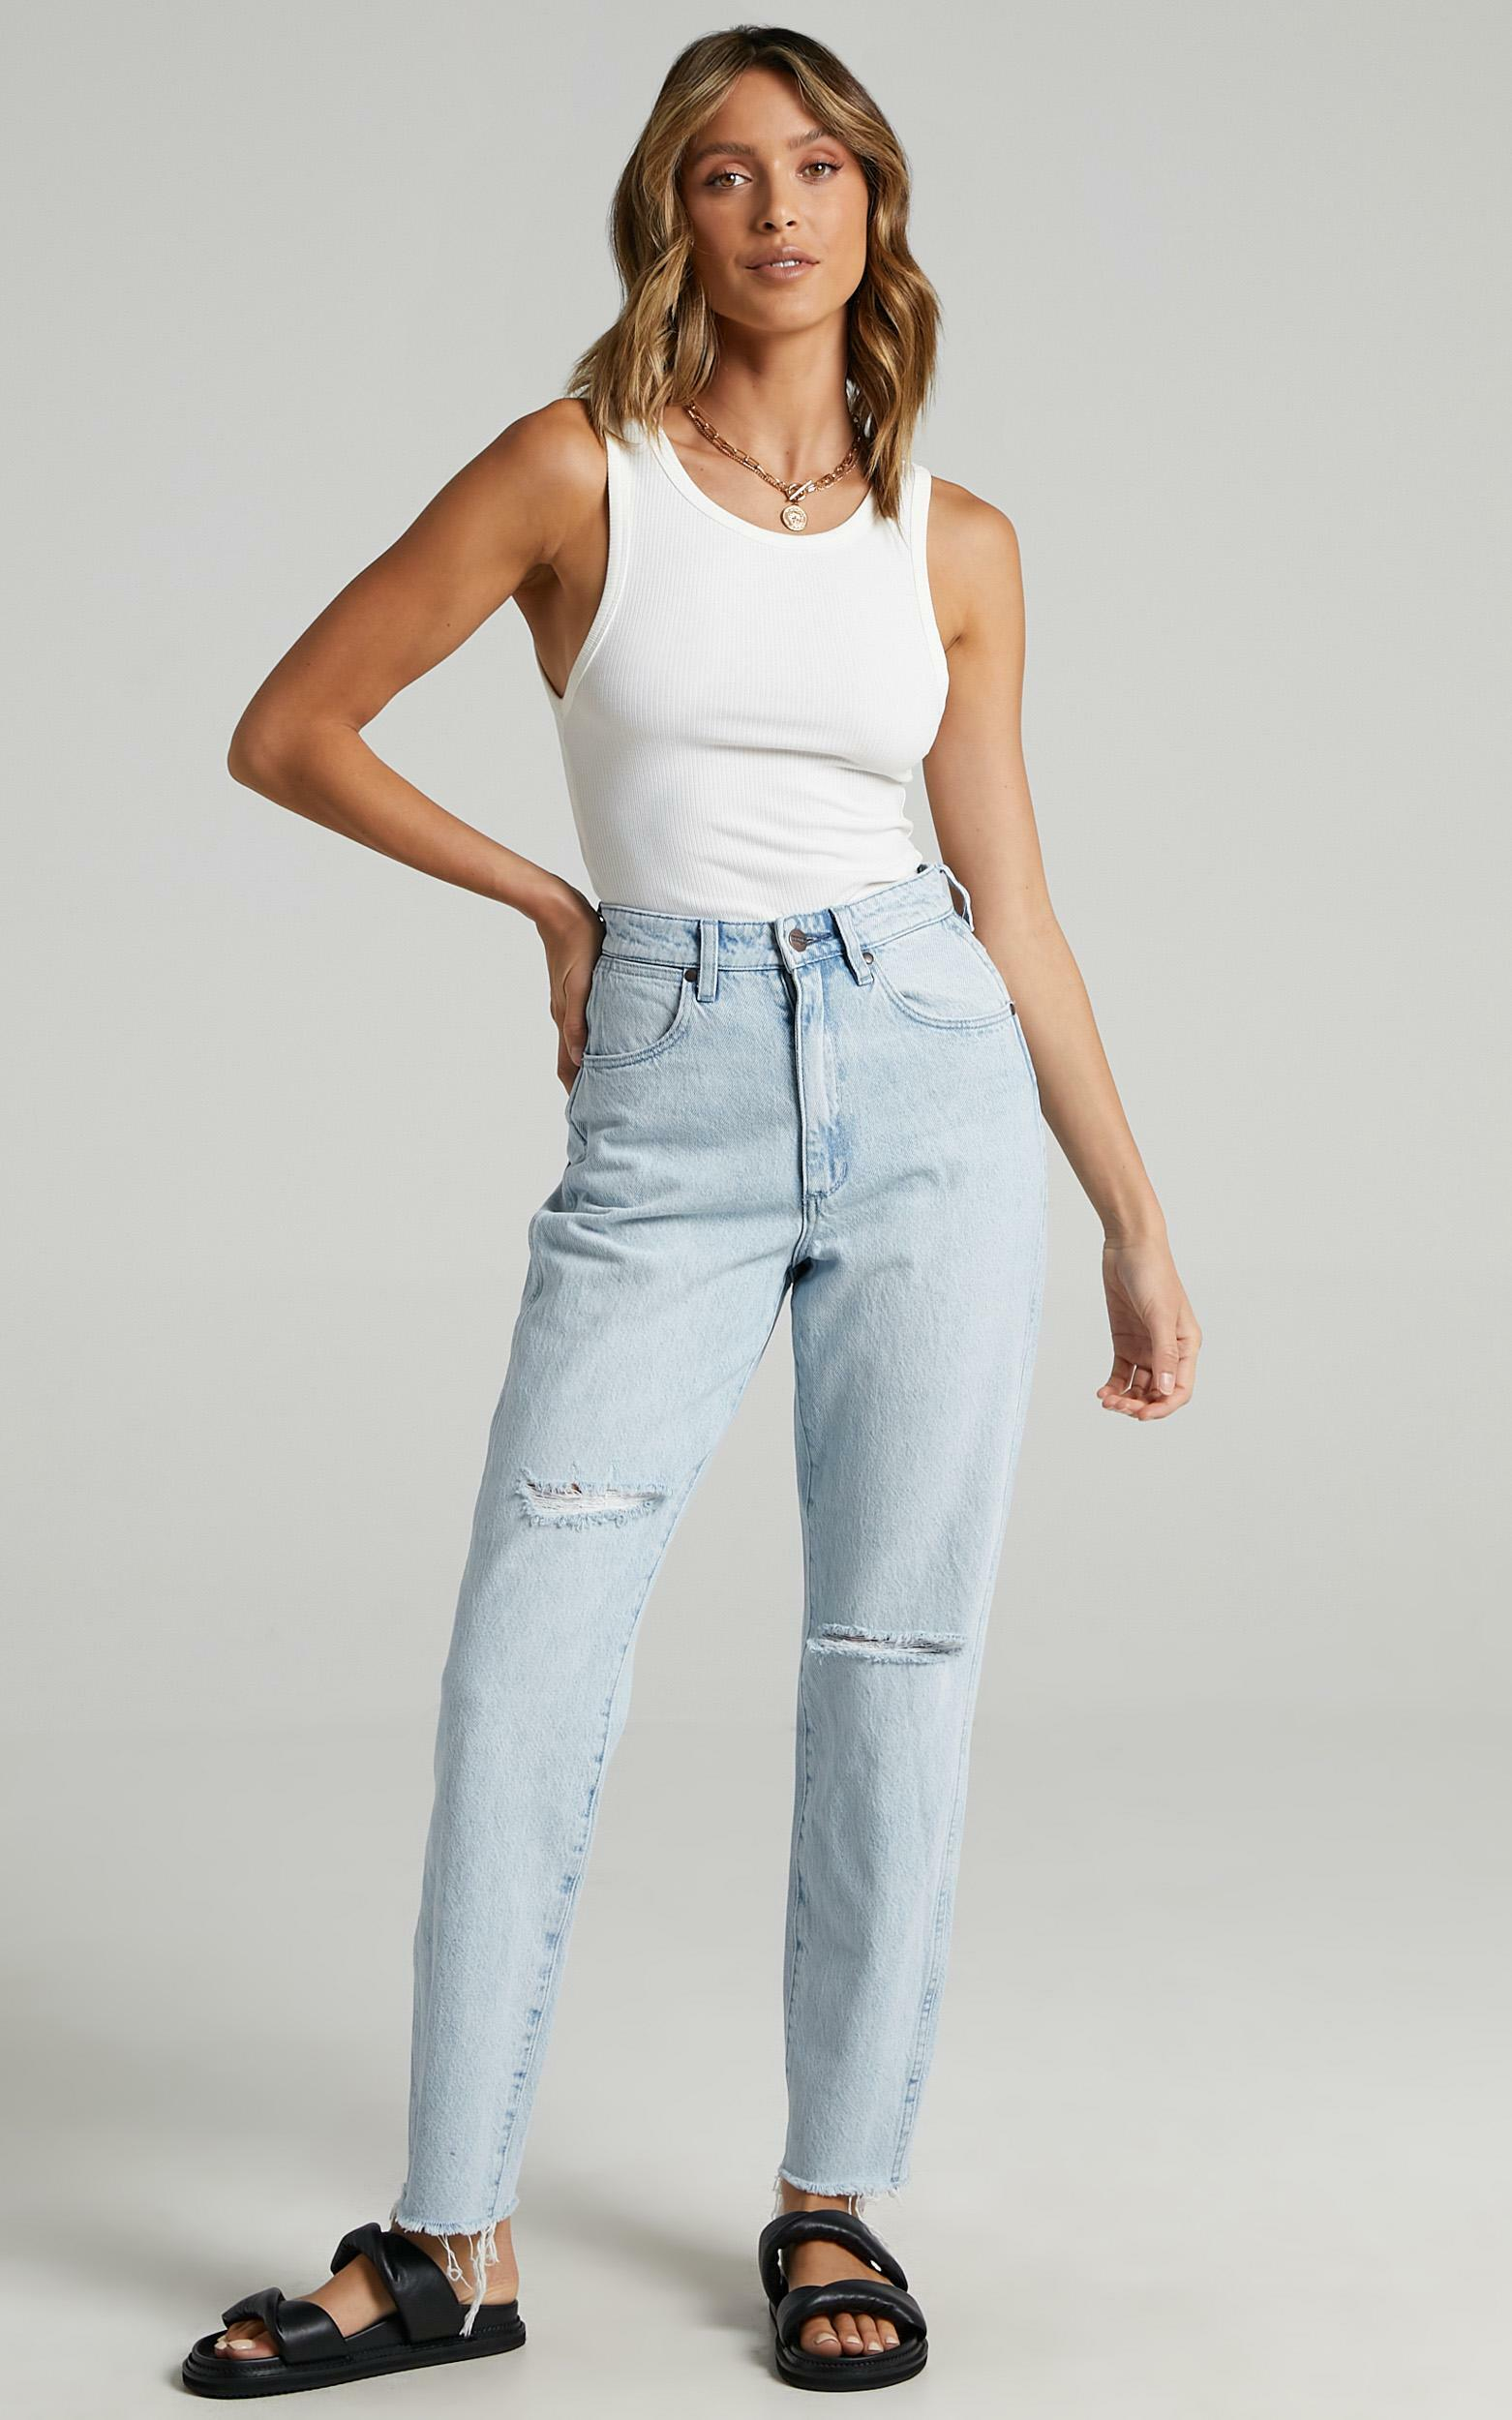 Wrangler - Drew Jean in Blue Chain - 6 (XS), Blue, hi-res image number null